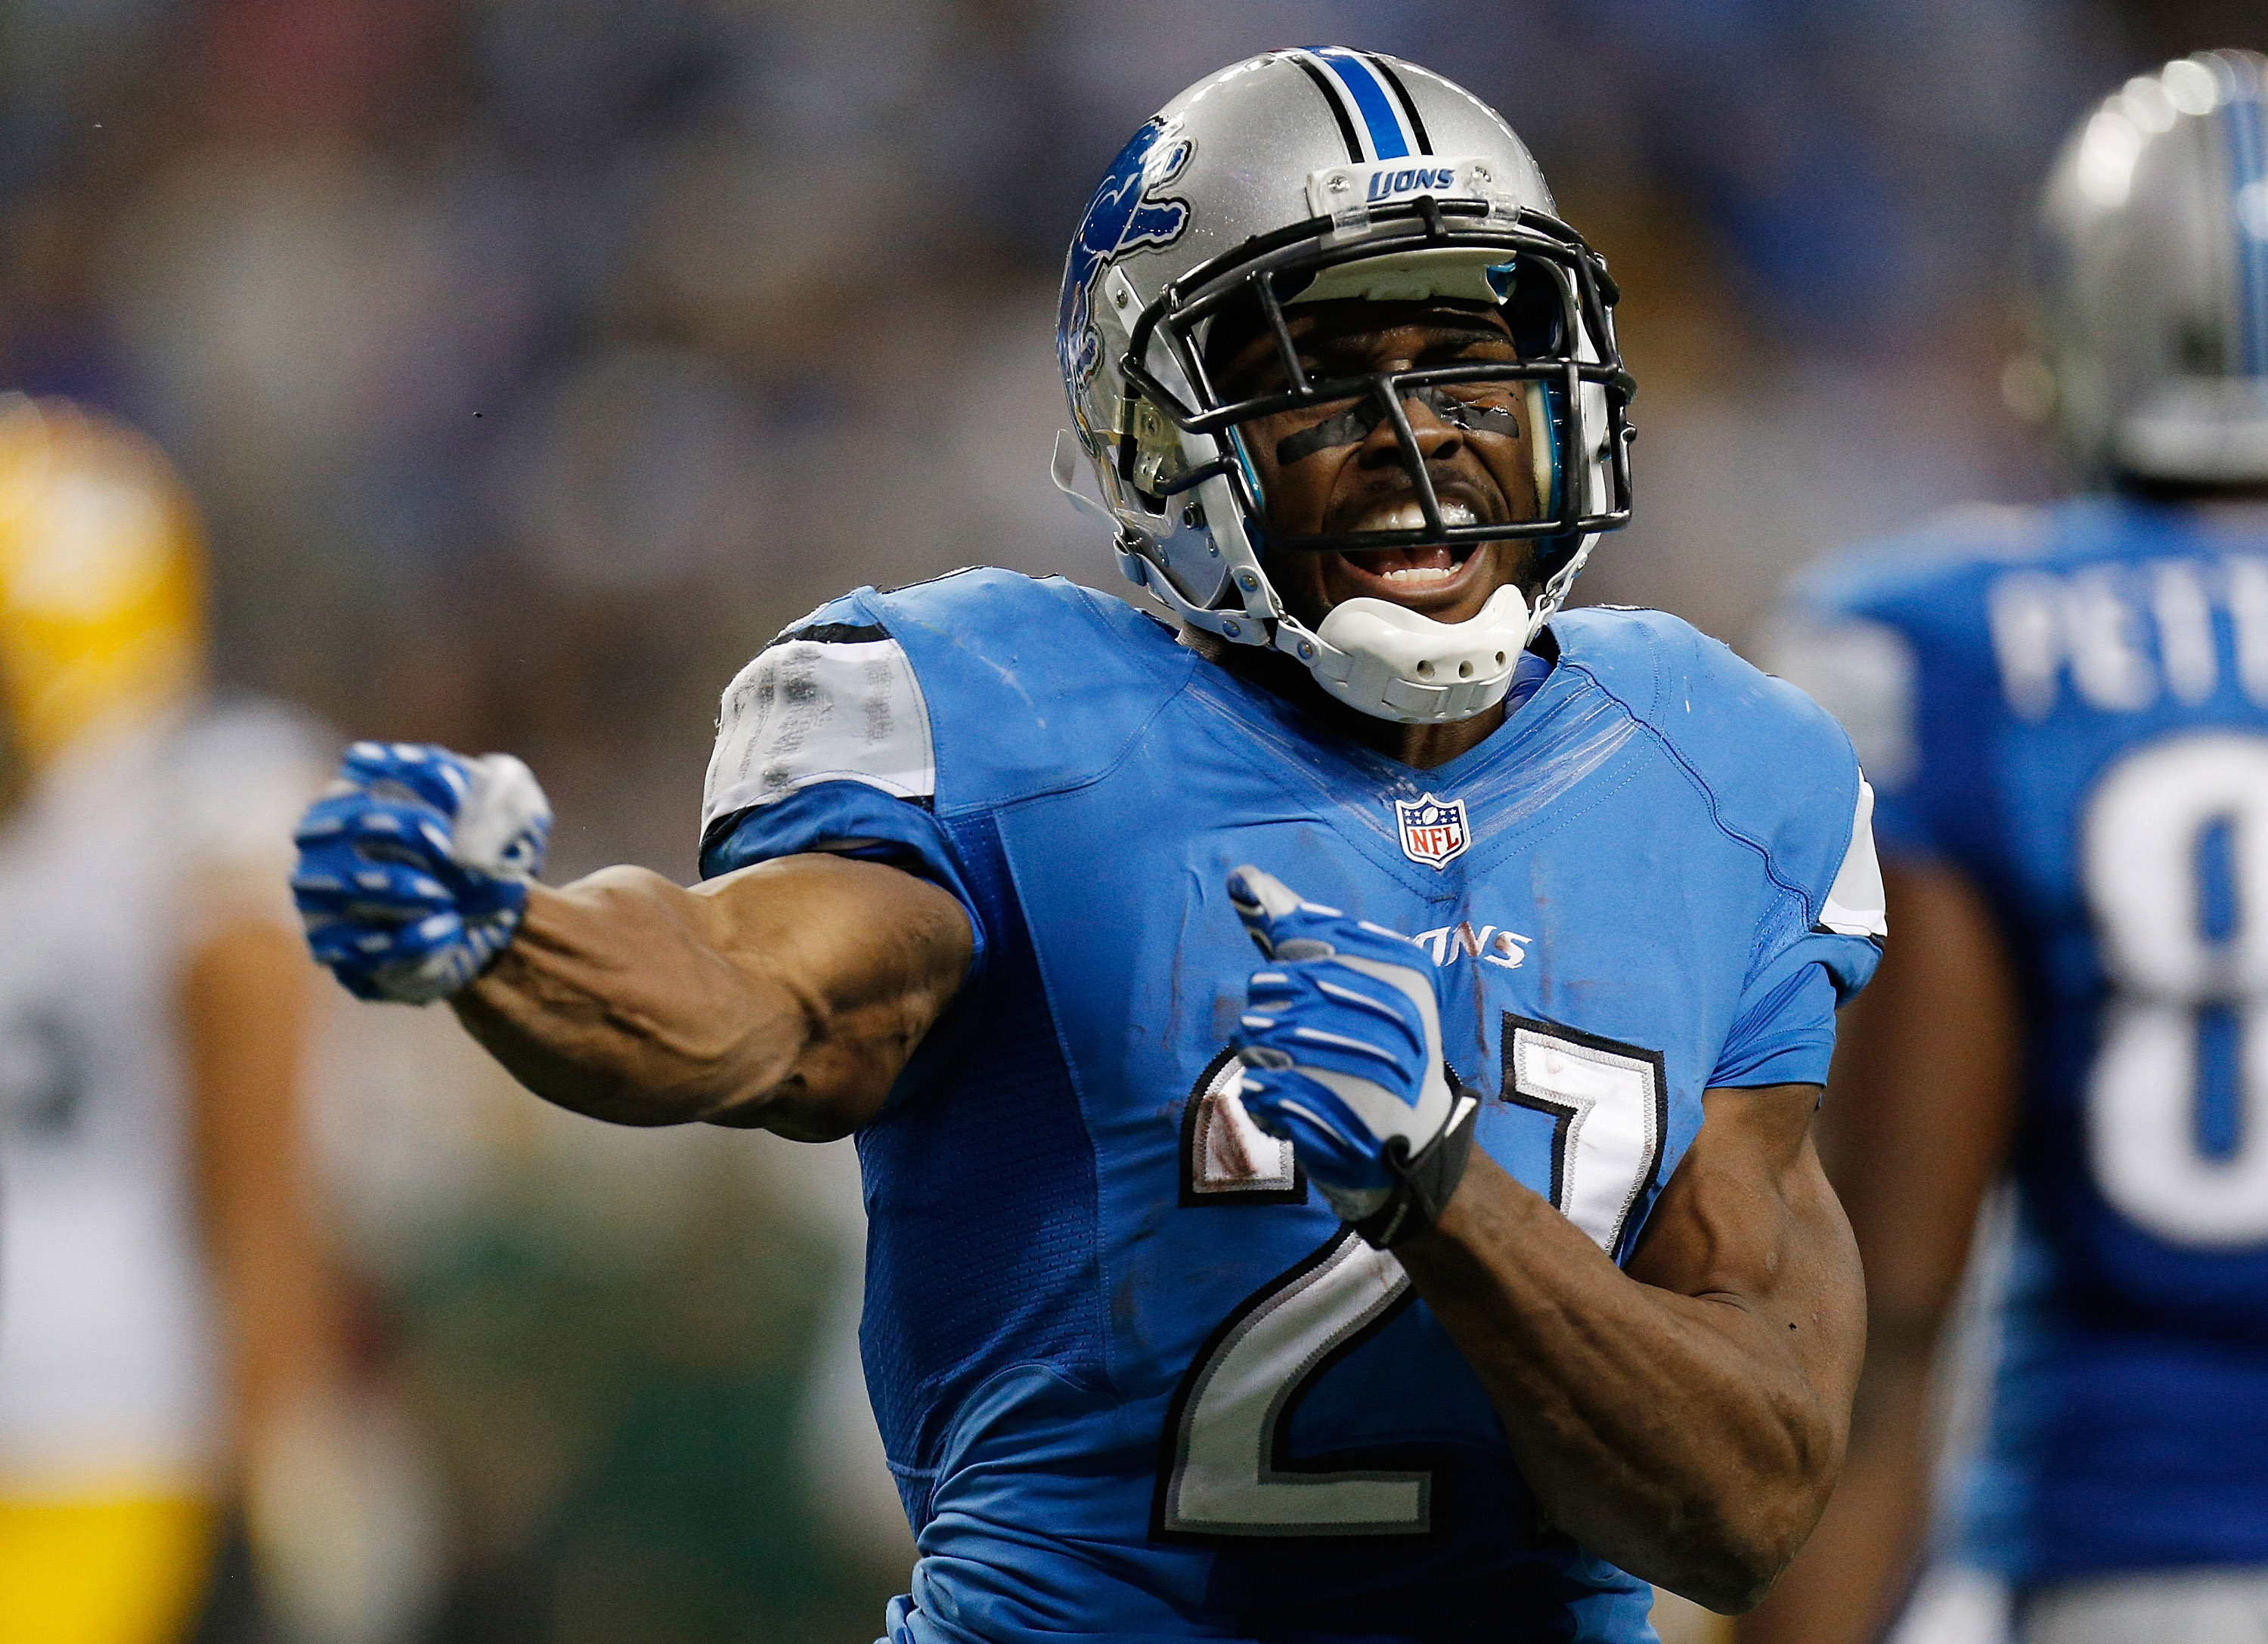 DETROIT, MI - NOVEMBER 28: Reggie Bush #21 of the Detroit Lions reacts after a second quarter reception and long run while playing the Green Bay Packers at Ford Field on November 28, 2013 in Detroit, Michigan. (Photo by Gregory Shamus/Getty Images)